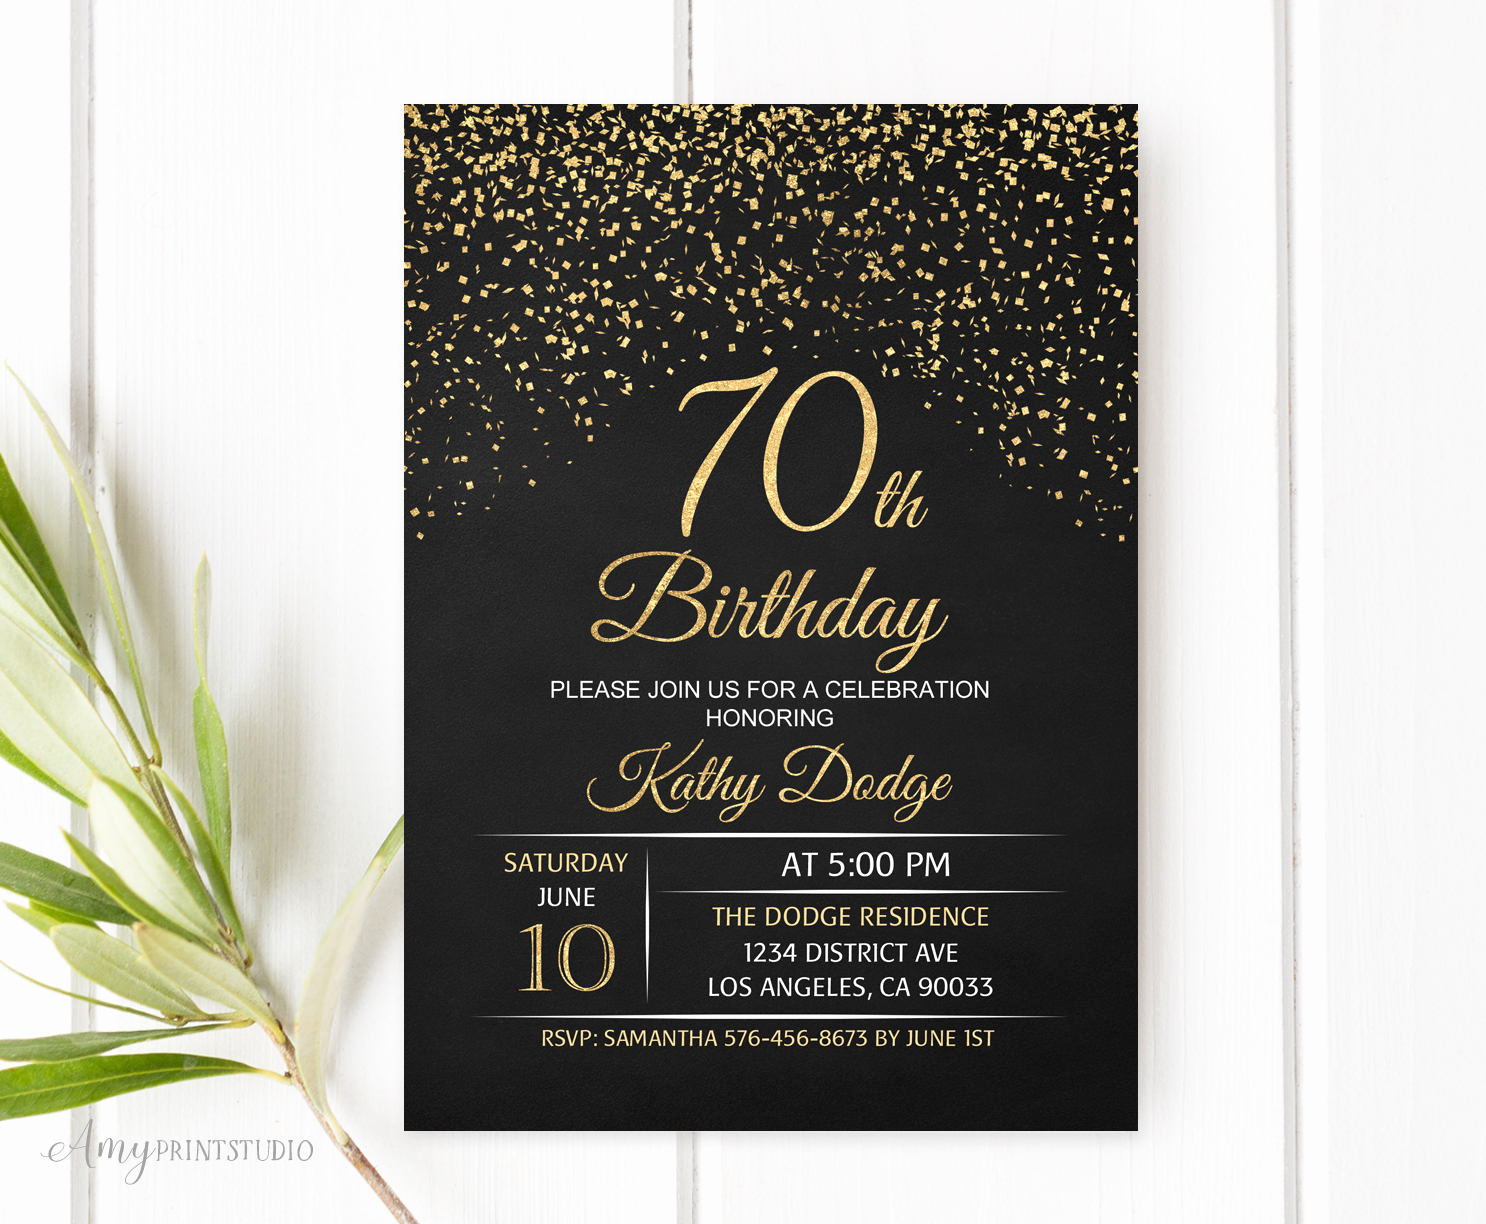 70th Birthday Party Invitation Wording Fresh Ideas Immaculate Ideas for 70th Birthday Invitations